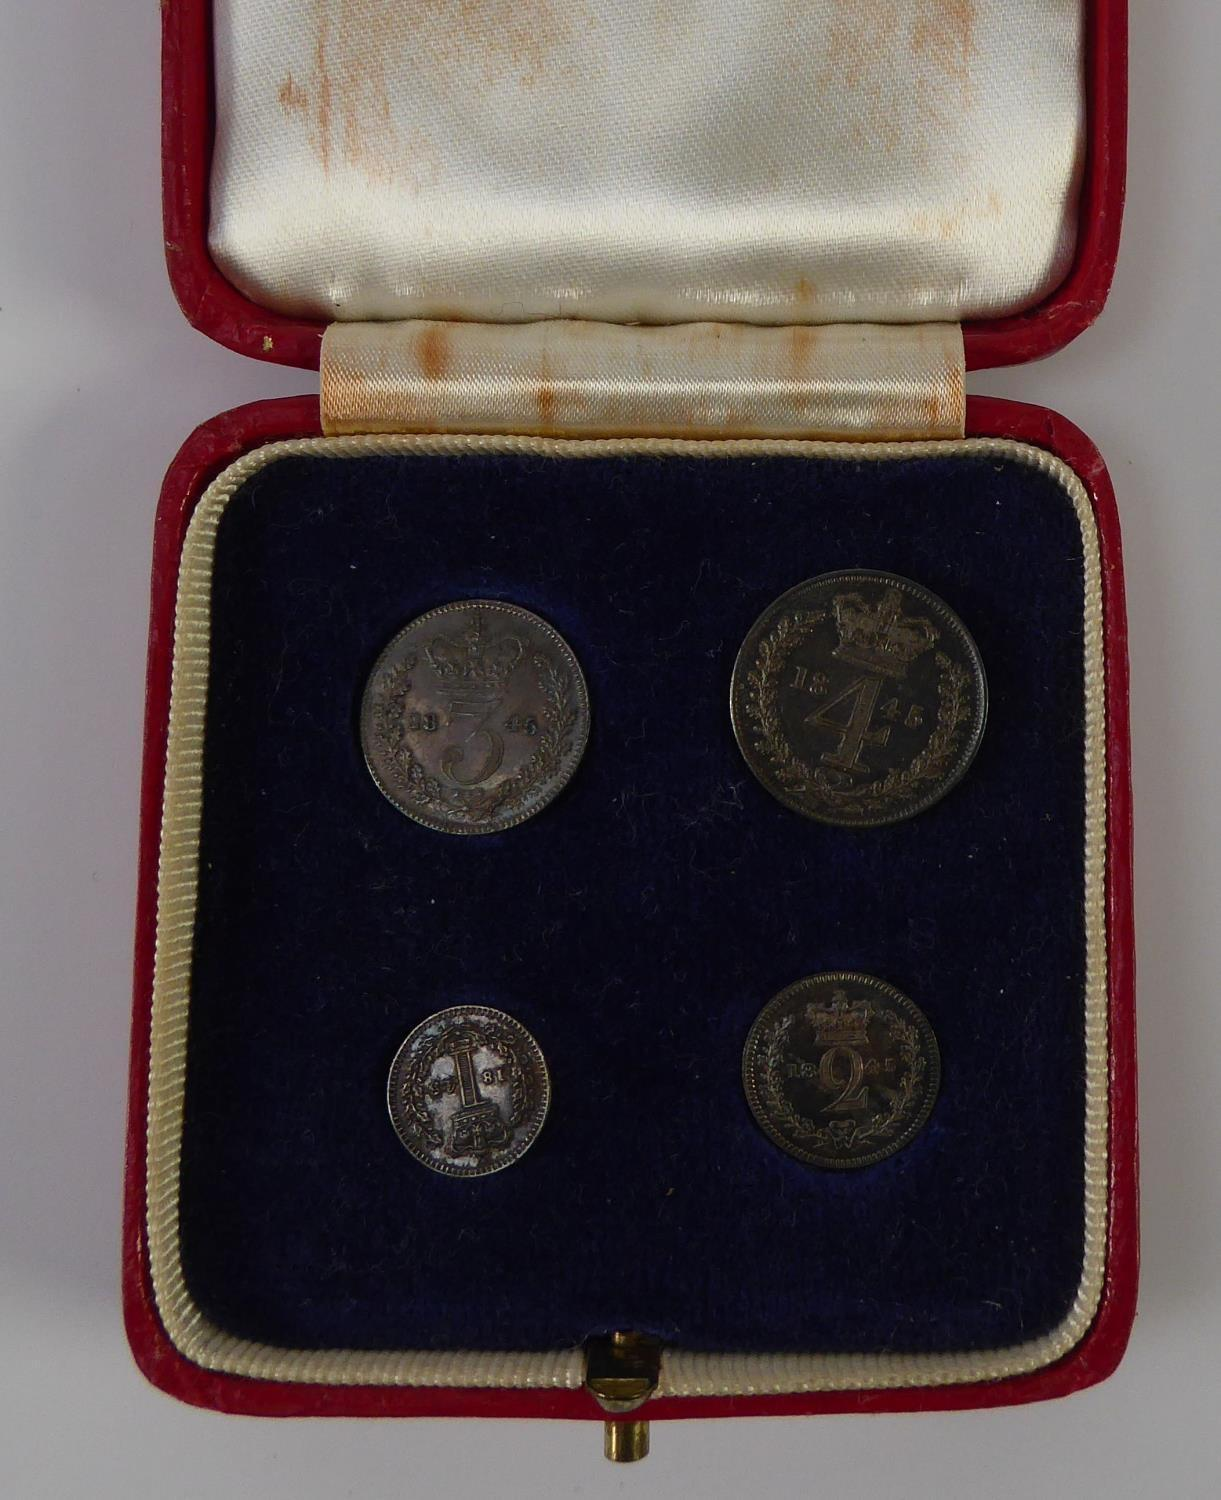 Lot 19 - VICTORIA MAUNDY SET OF FOUR SILVER COINS 1845, in uncirculated condition, viz four pence (groat),